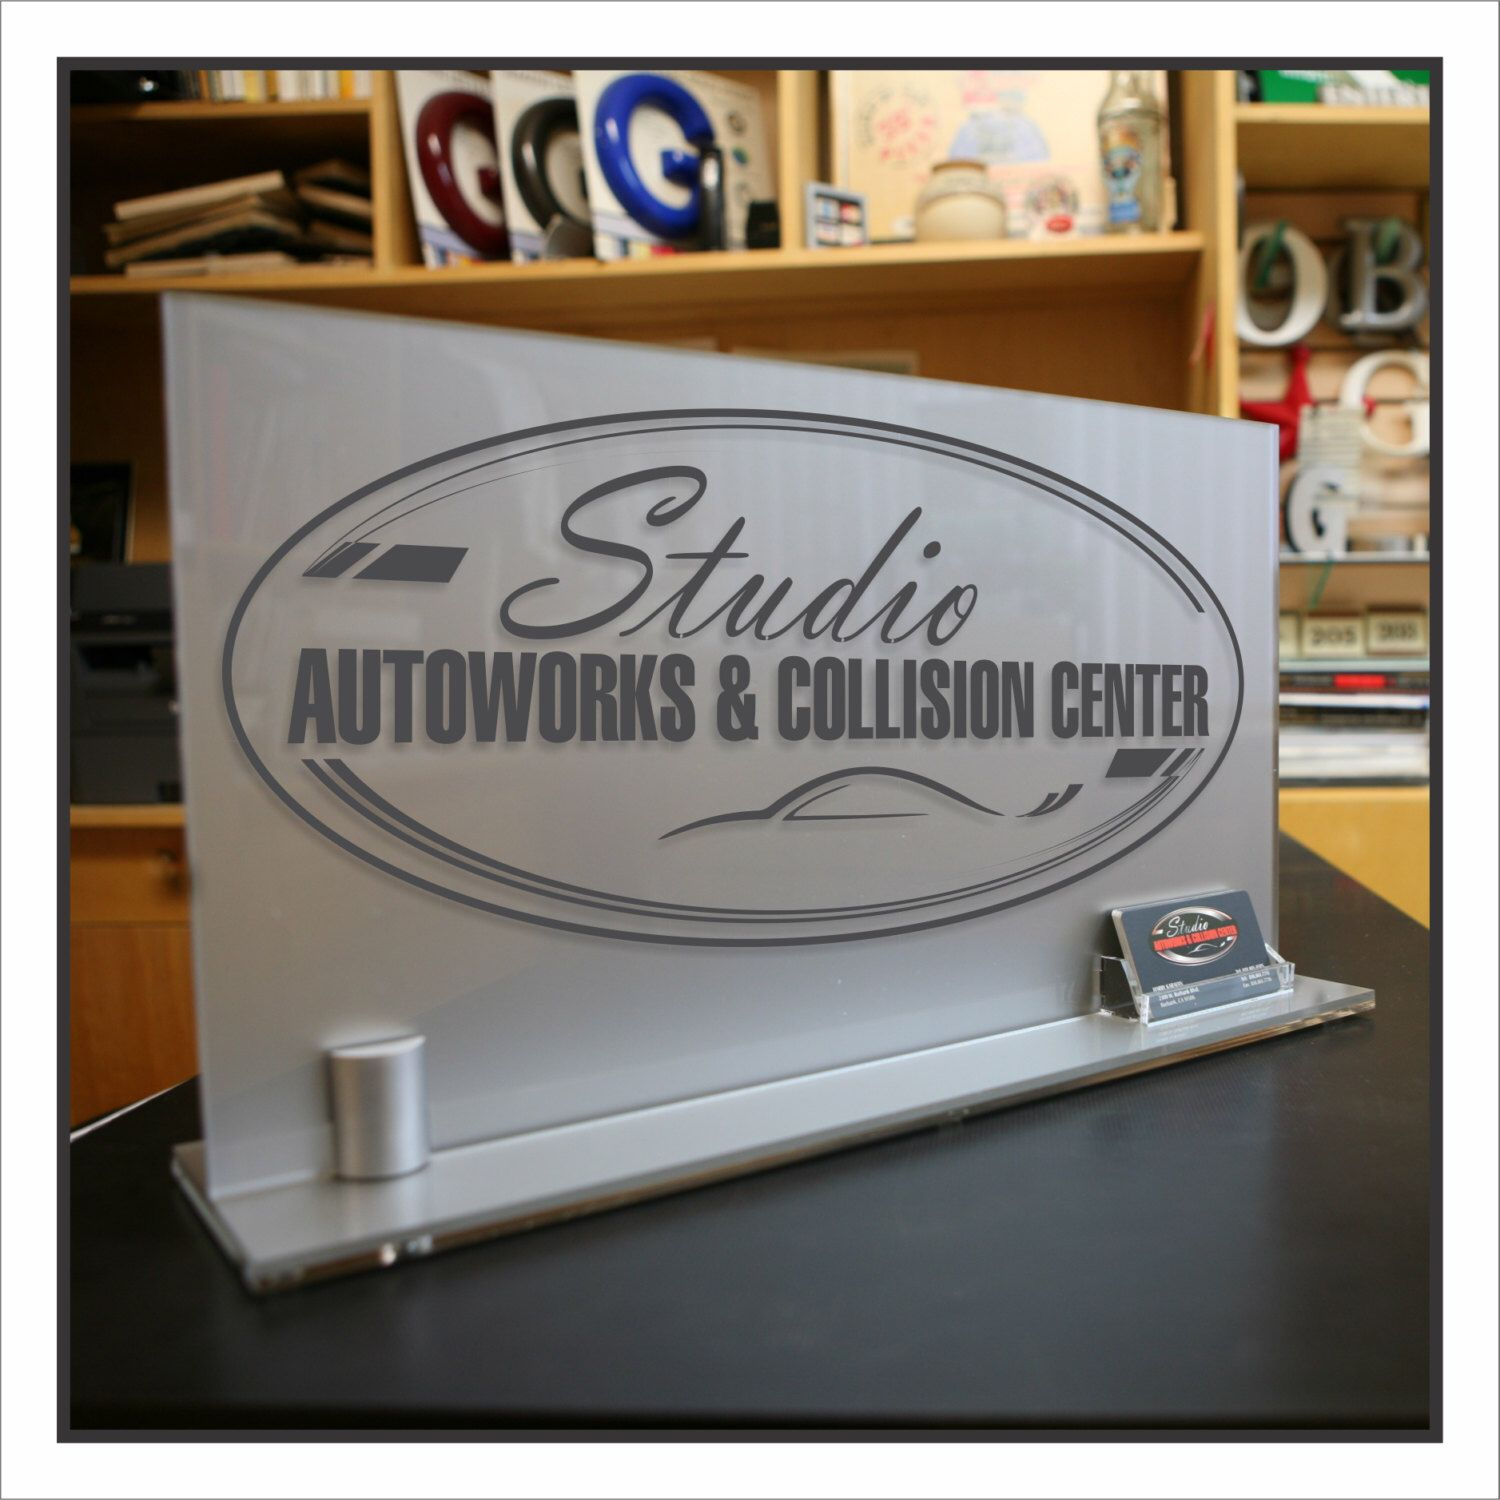 personalized office front desk logo or message sign modern look